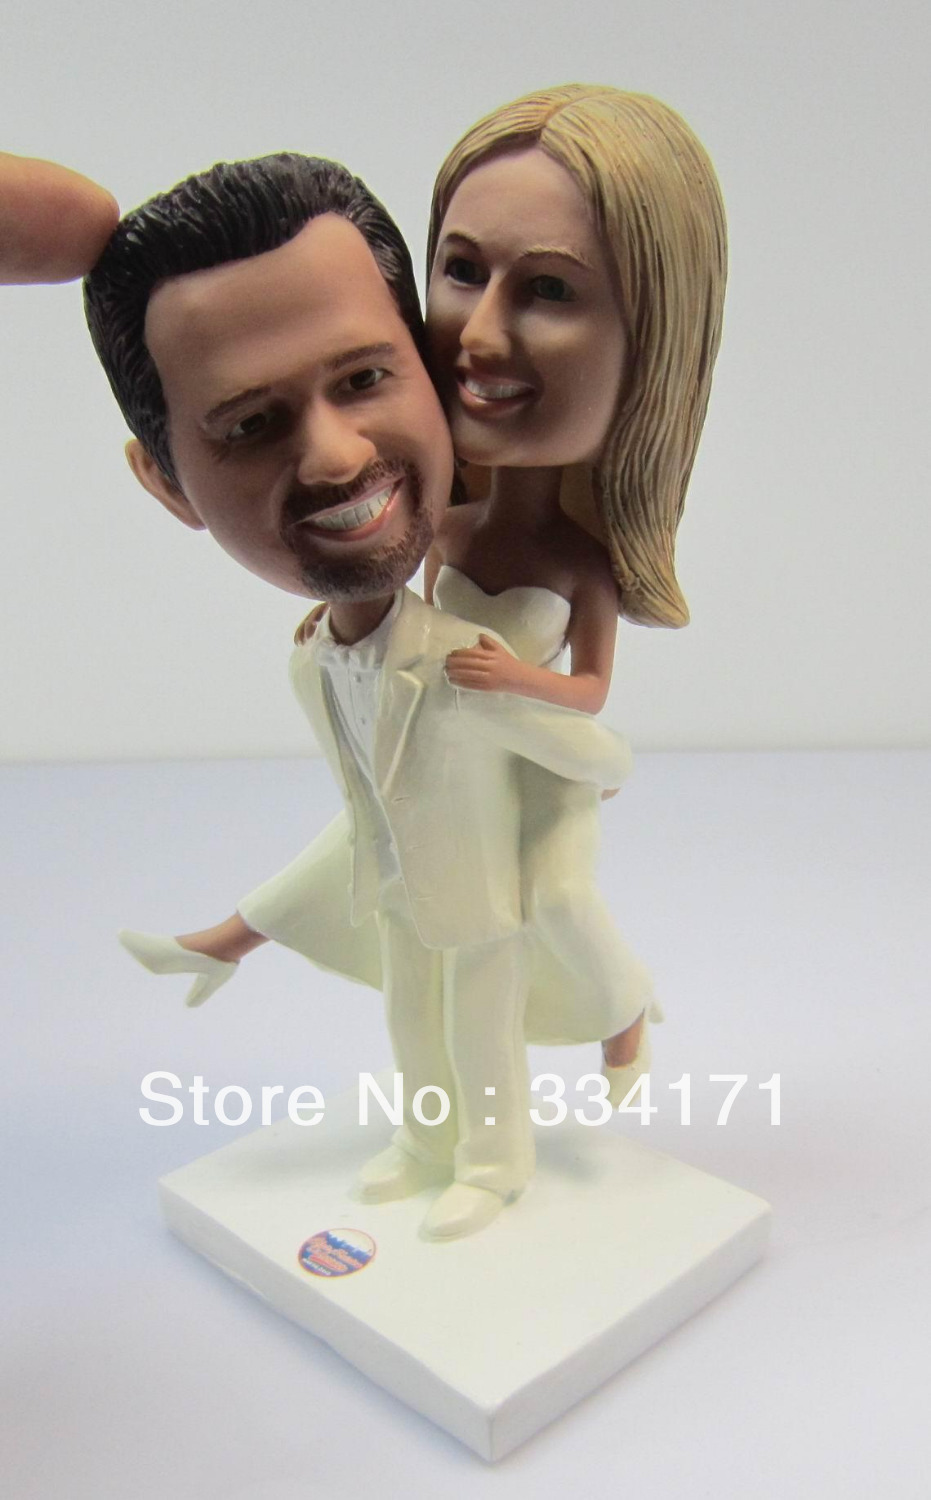 Personalized bobblehead doll carry you wedding gift wedding decoration fixed polyresin body + polyresin head(China (Mainland))